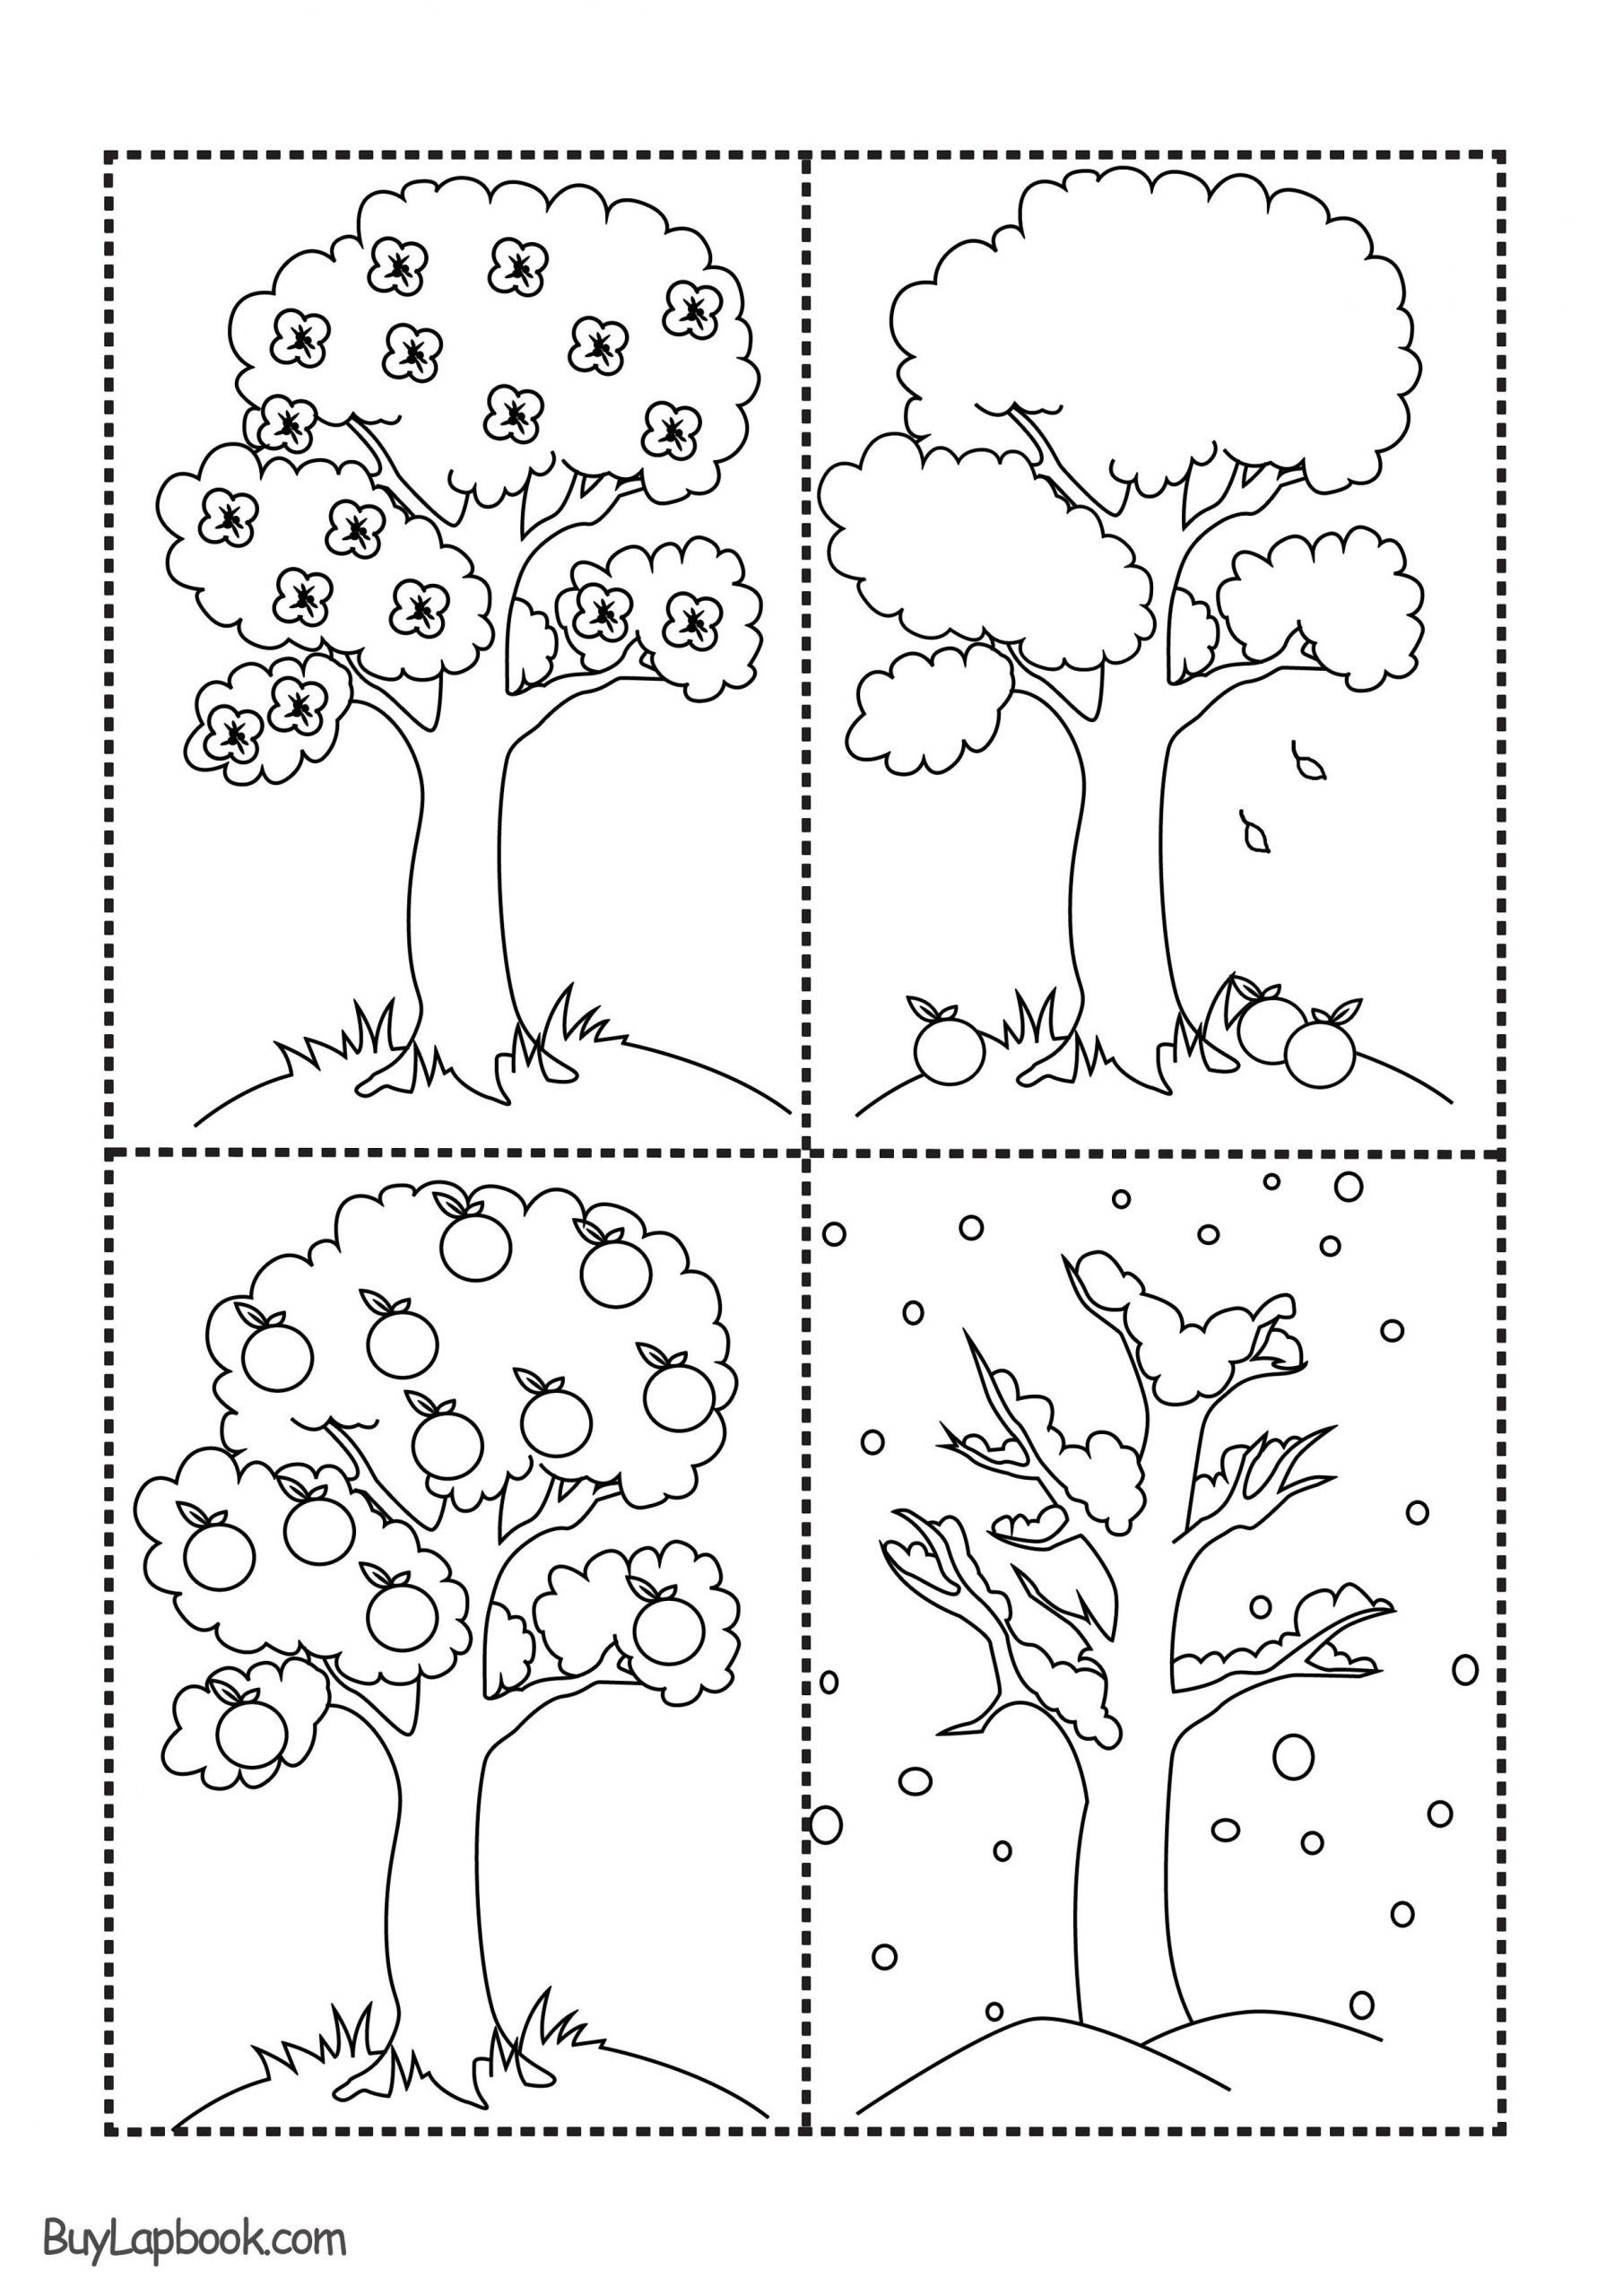 Apple Life Cycle Worksheet The Four Seasons Of The Apple